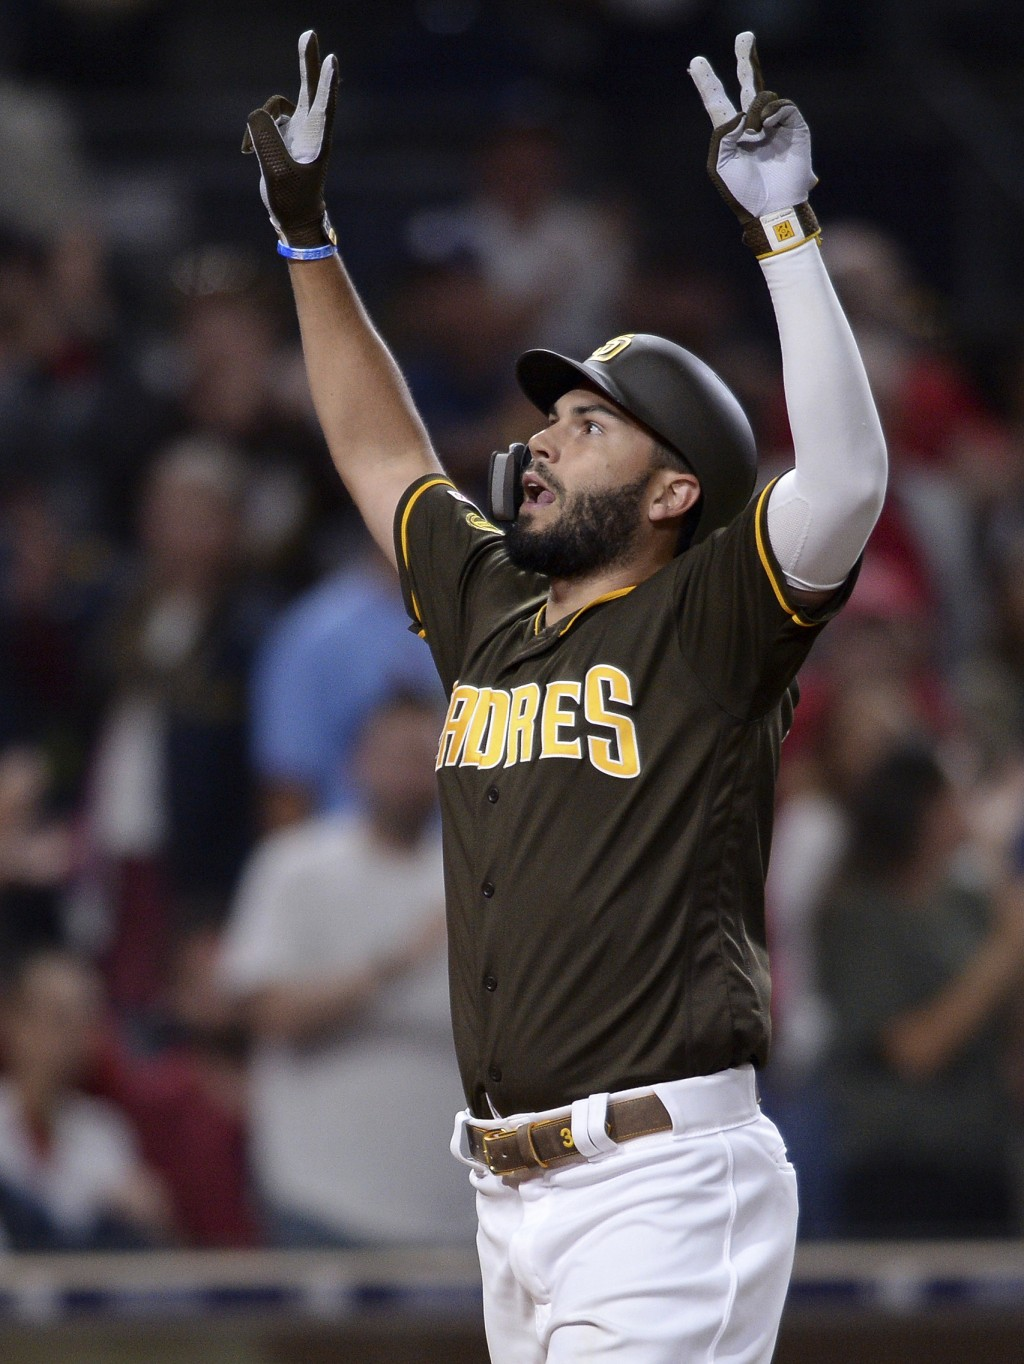 San Diego Padres' Eric Hosmer reacts after hitting a home run during the sixth inning of the team's baseball game against the St. Louis Cardinals on F...